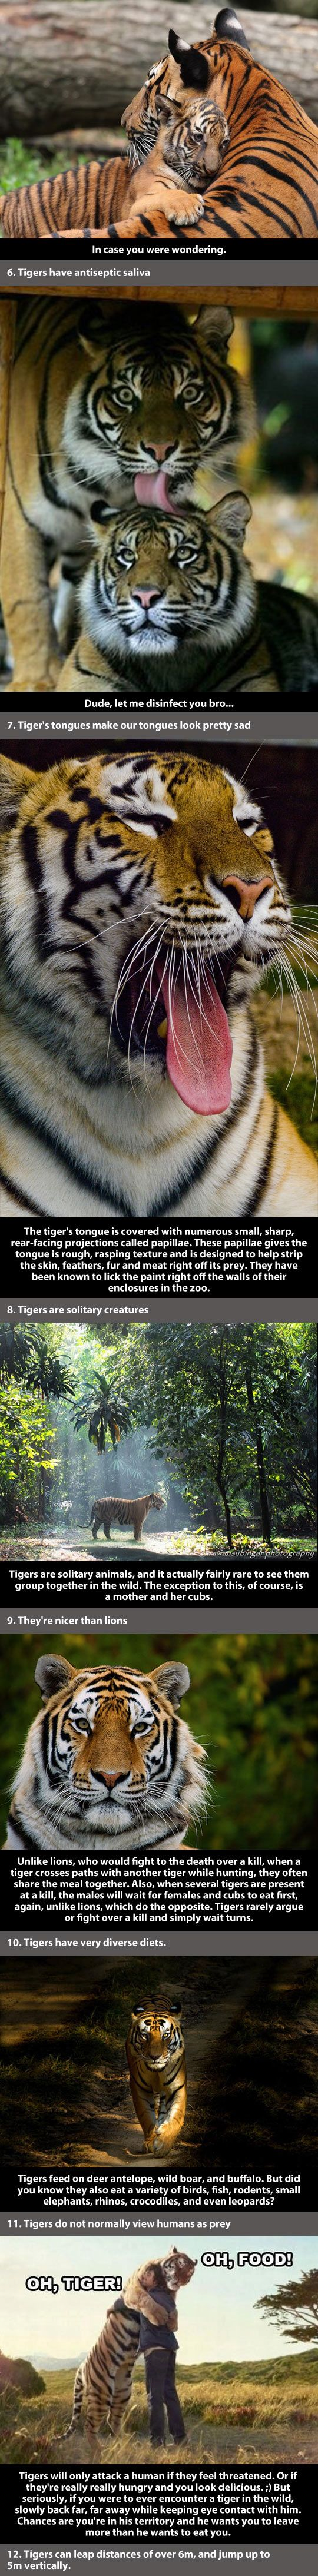 Cool facts about a tiger // funny pictures - funny photos - funny images - funny pics - funny quotes - #lol #humor #funnypictures